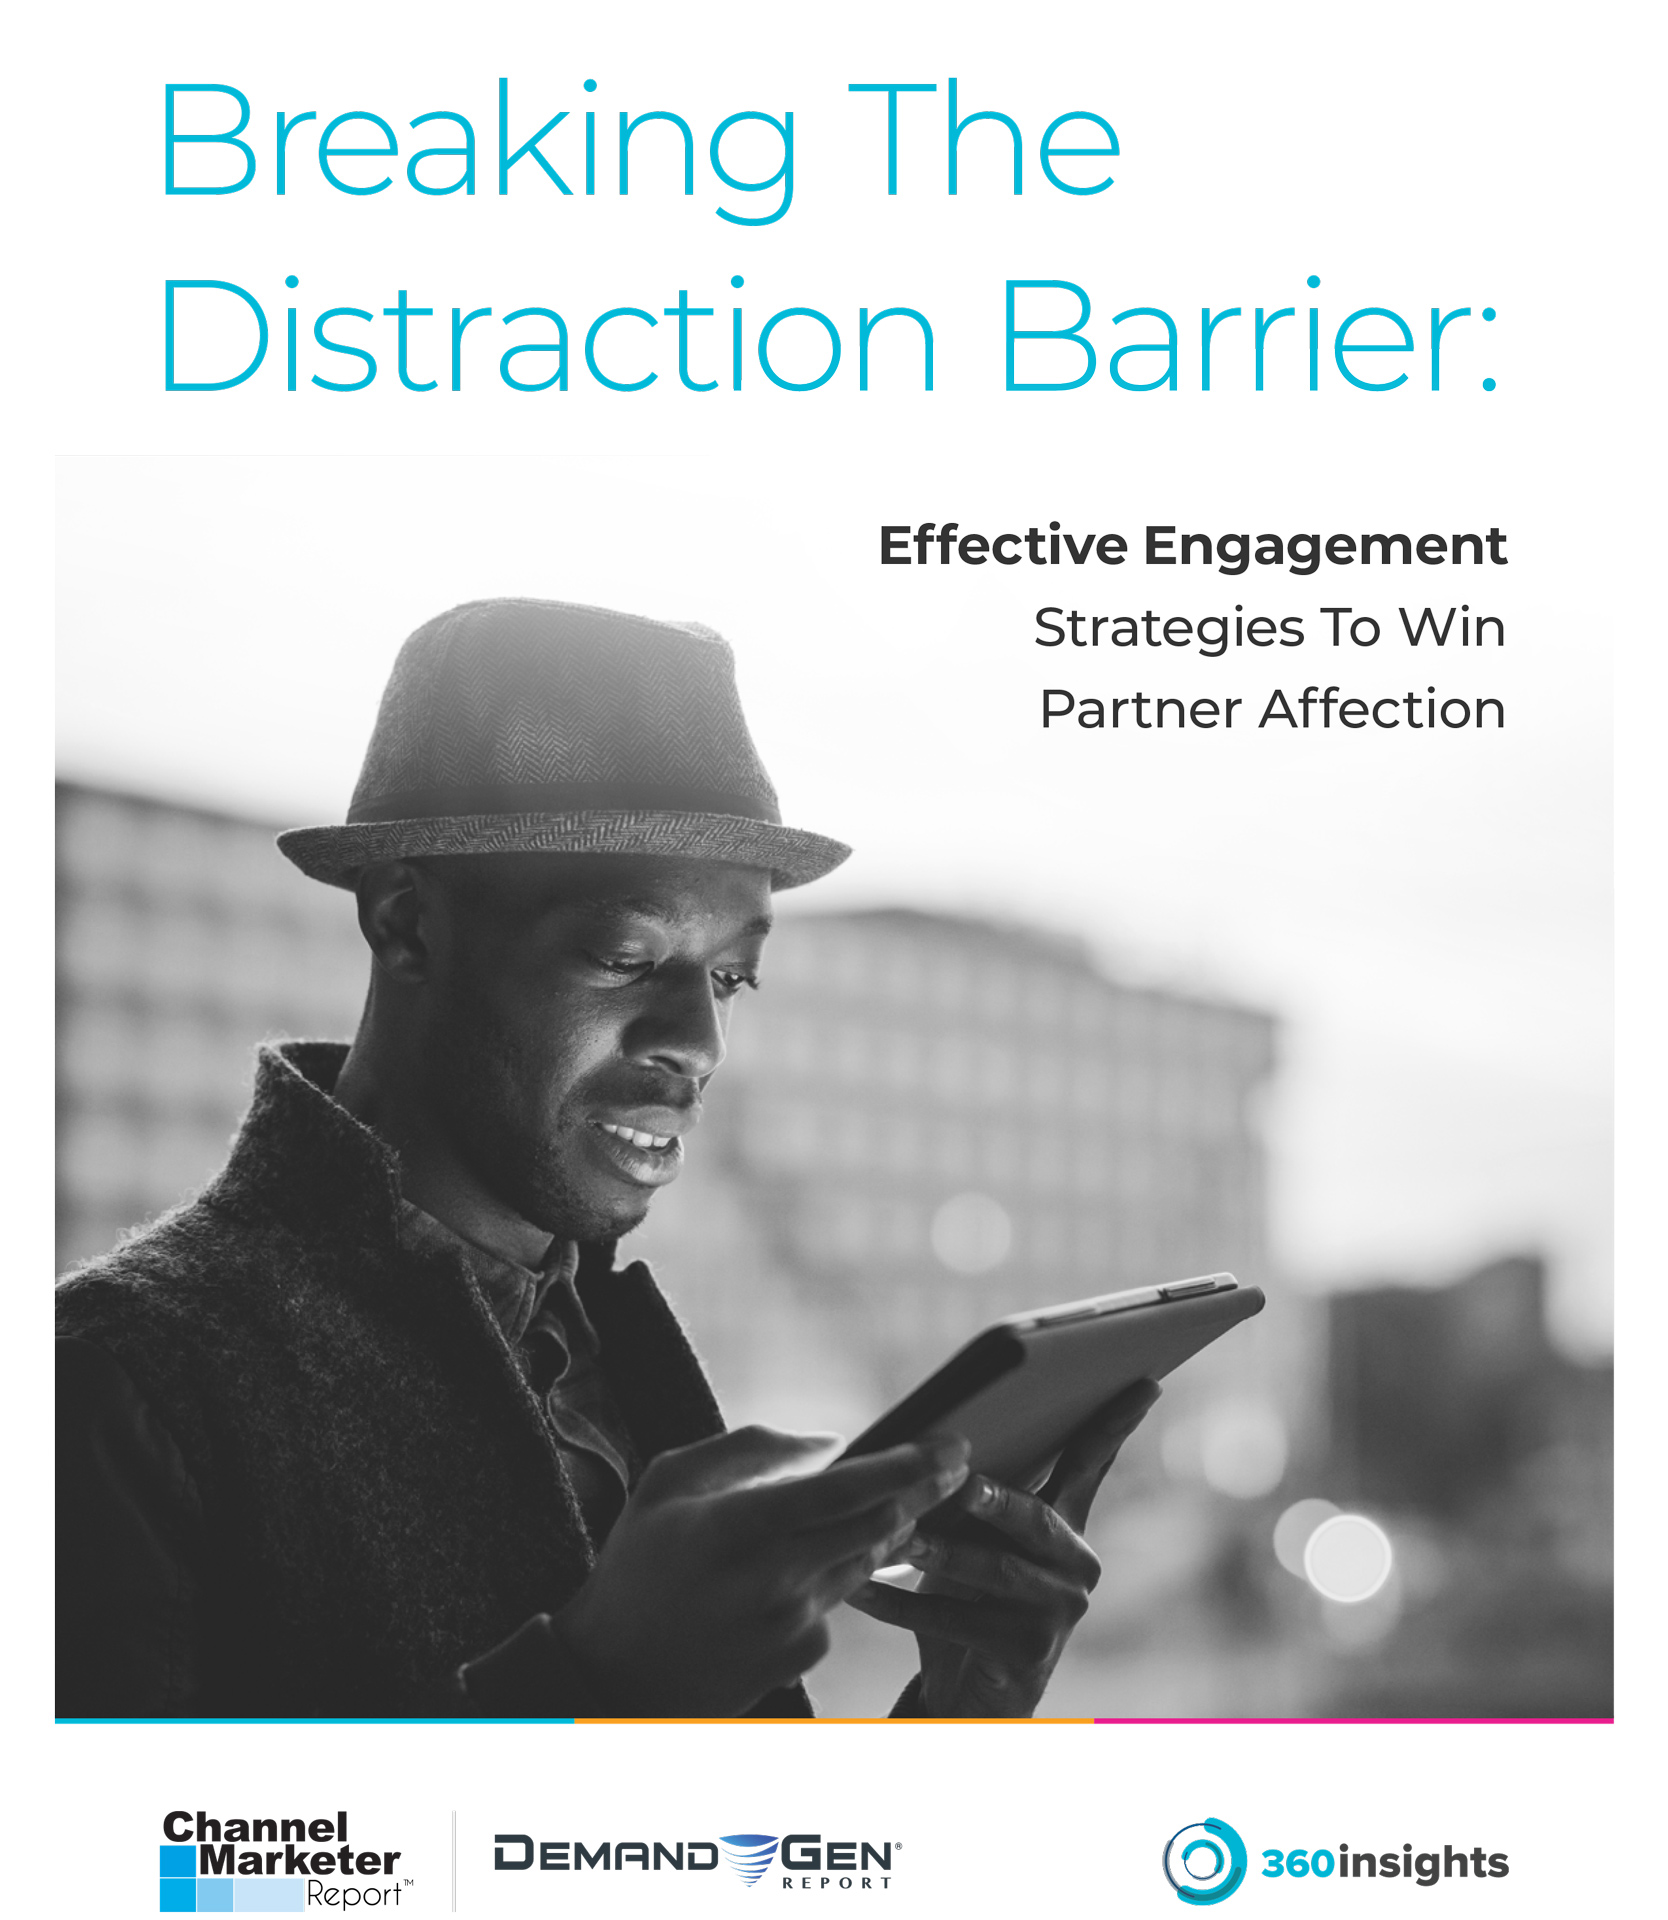 Breaking The Distraction Barrier: Effective Engagement Strategies To Win Partner Affection